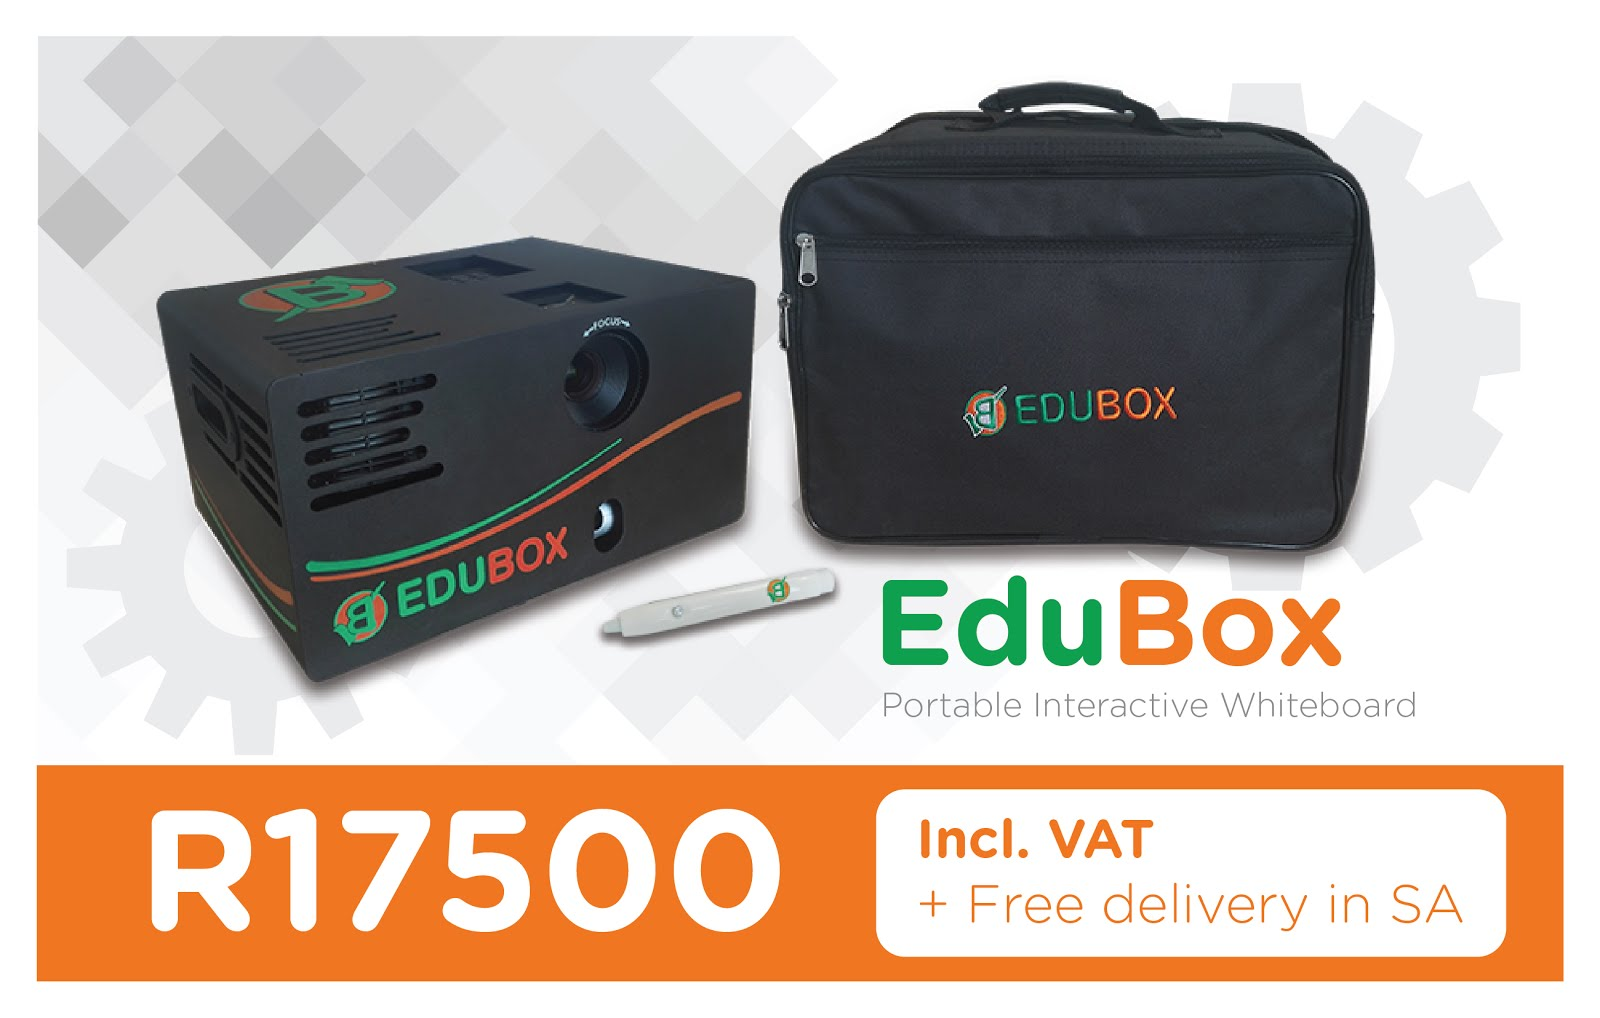 Mobile / Portable interactive whiteboard in a box - Plug and play with your laptop